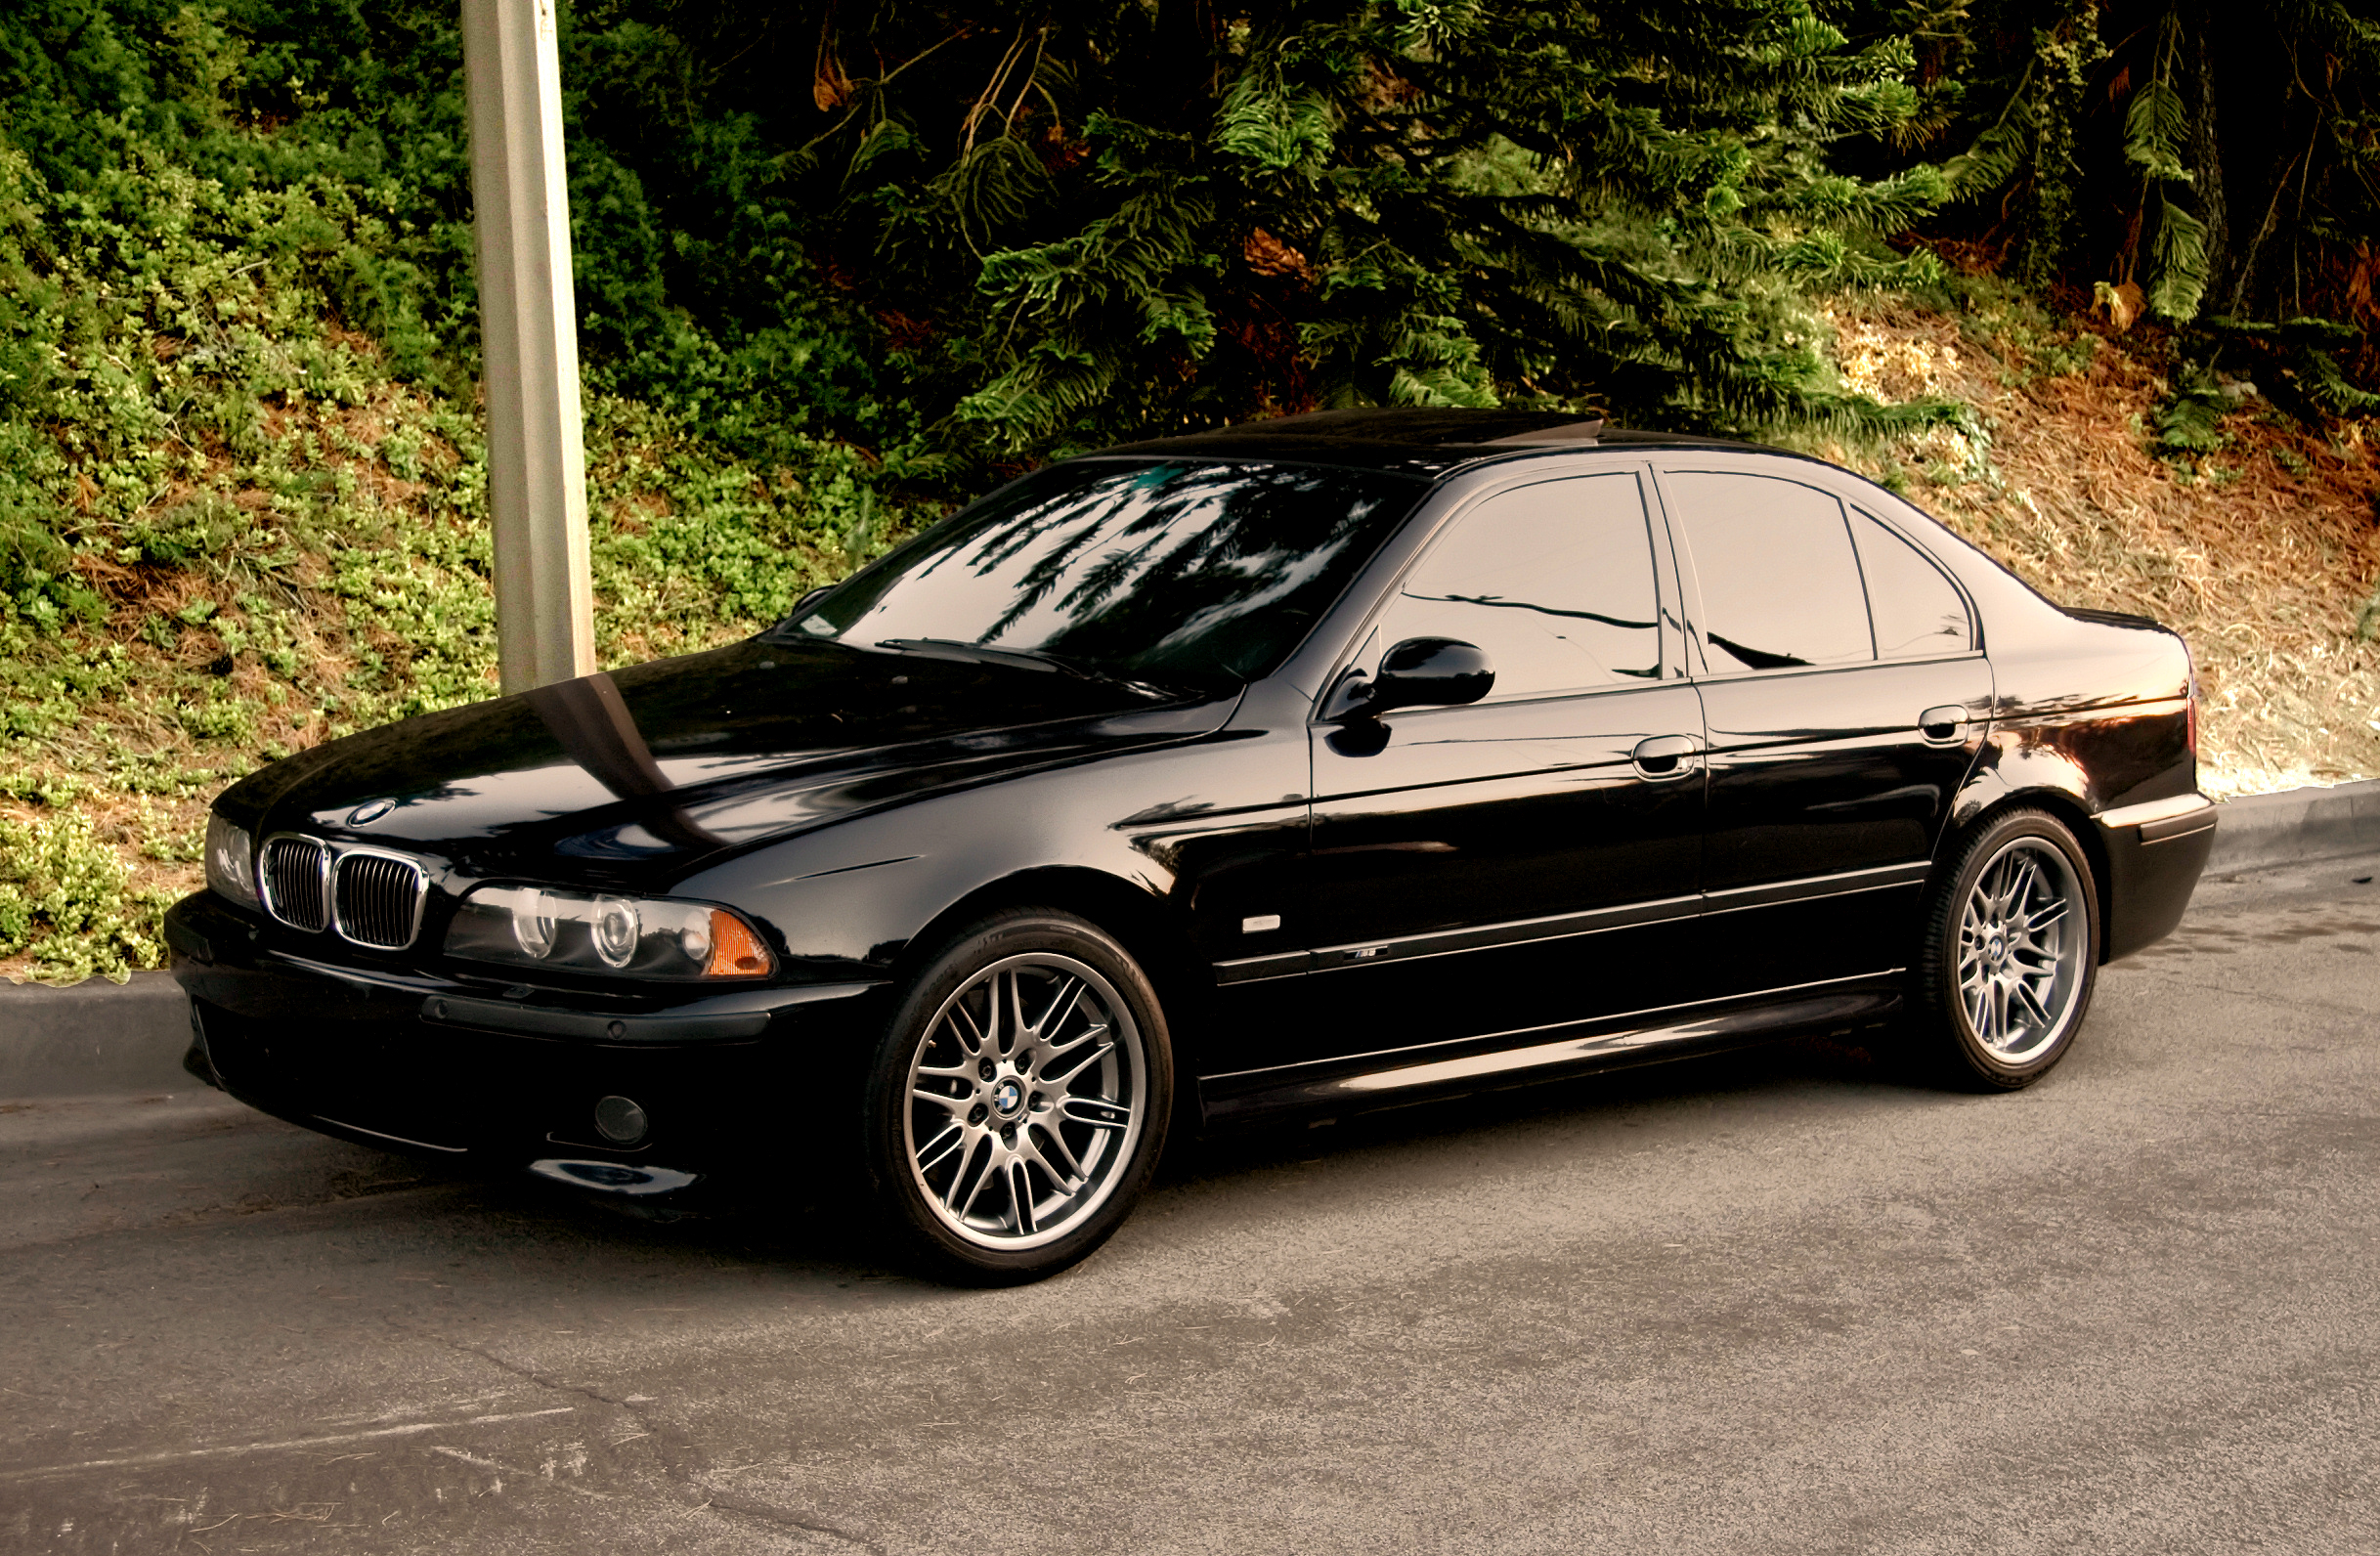 Bedwelming Bmw e39 525d Tuned file,Bmw e46 tuning,e39 tuning,Bmw tuned files @XD33